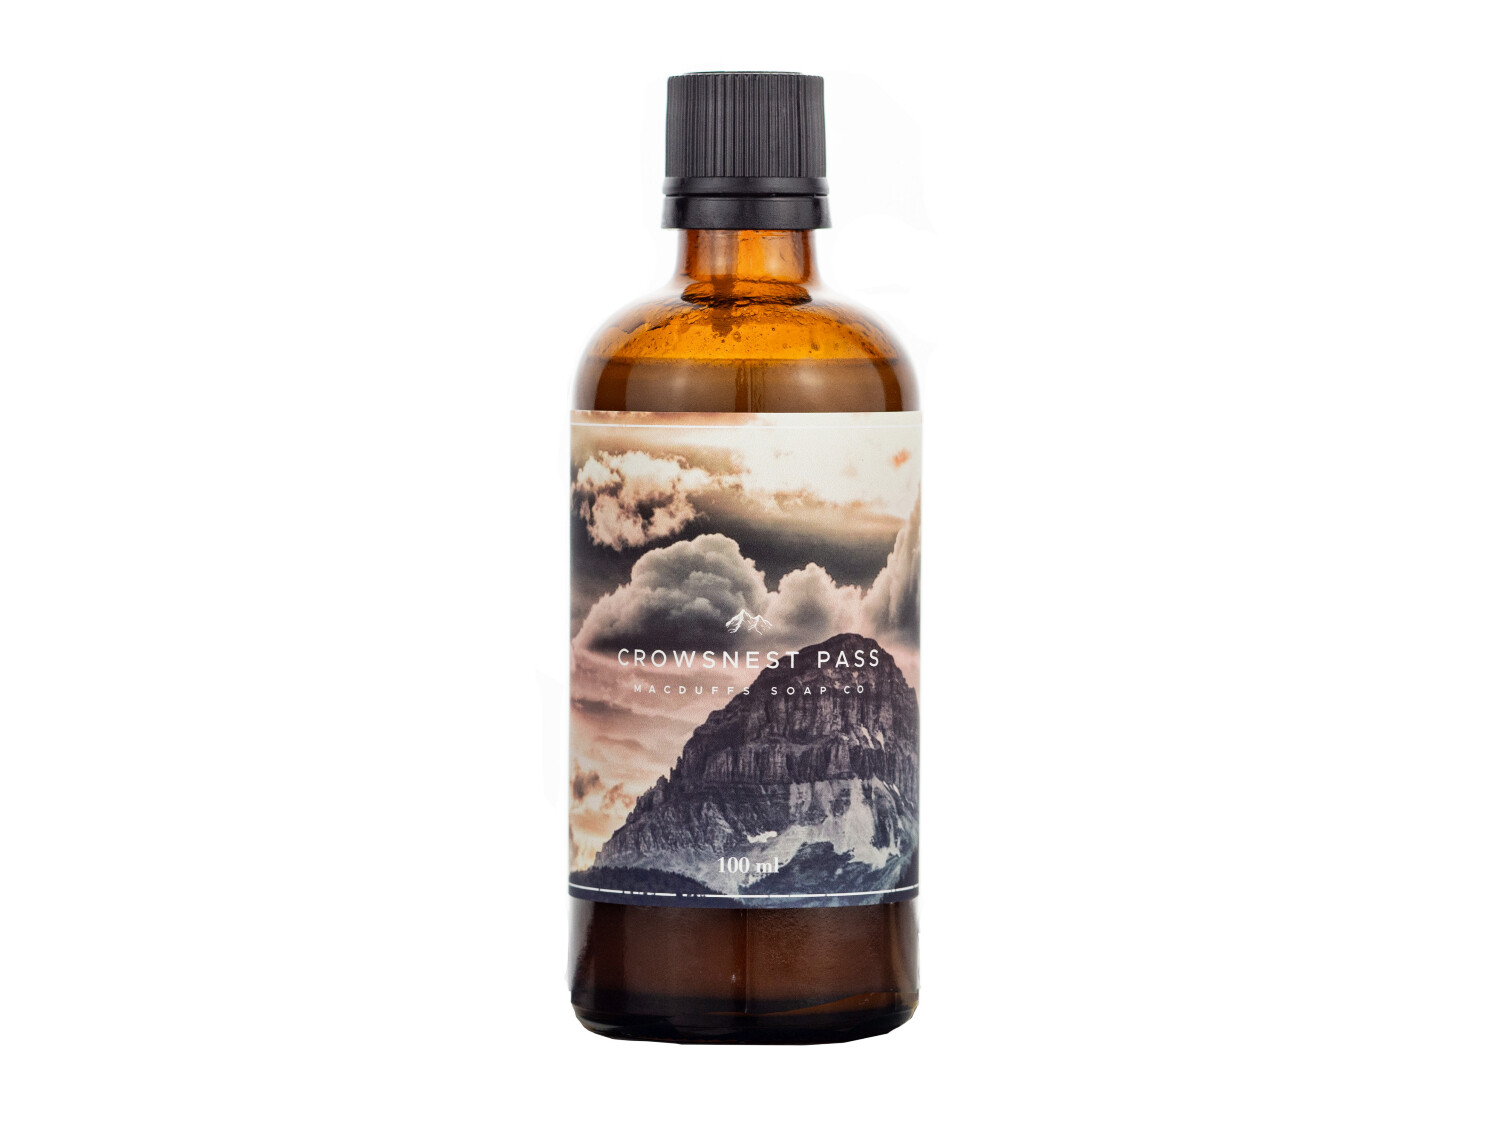 CROWSNEST PASS AFTERSHAVE SPLASH